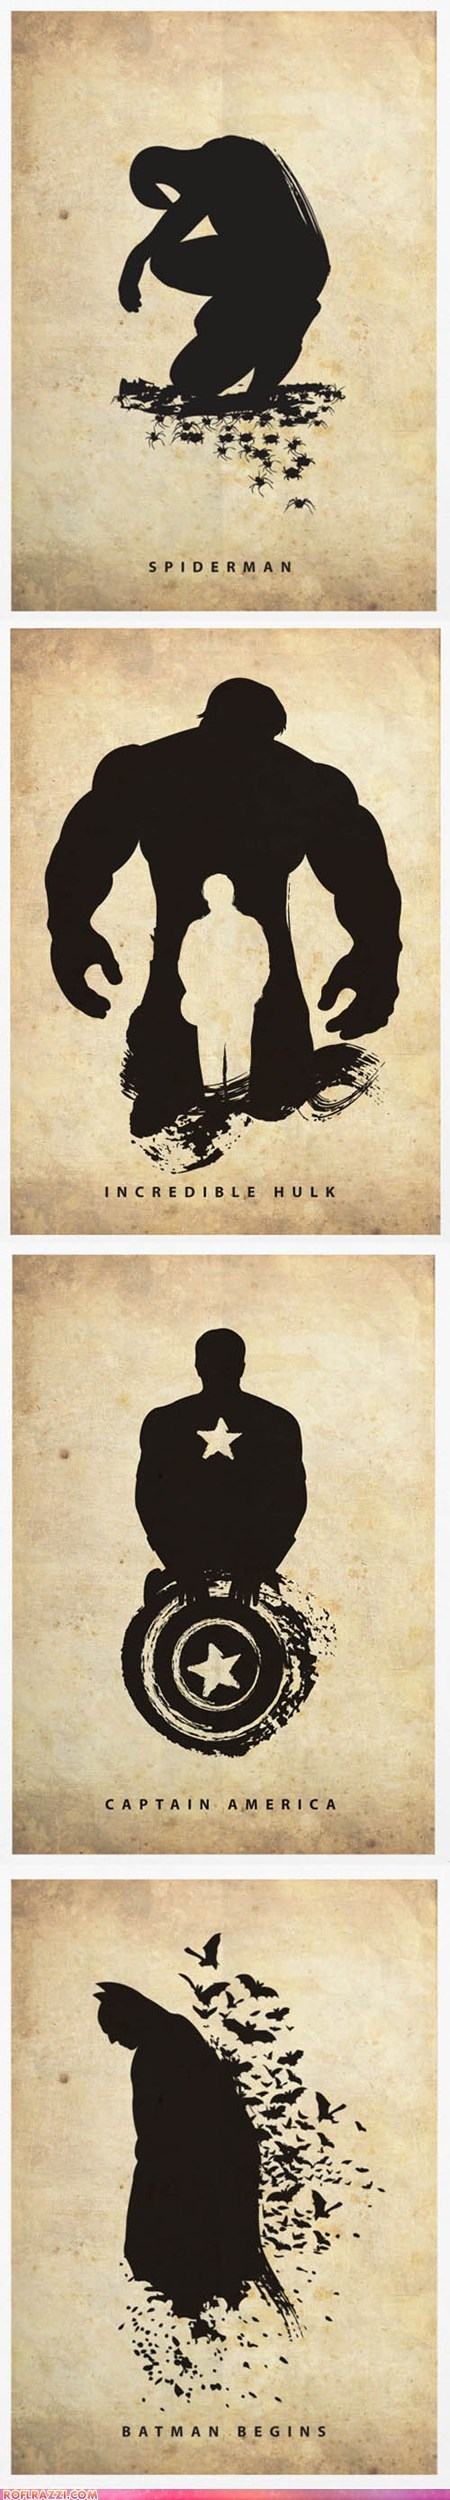 art,batman,captain america,cool,Movie,poster,Spider-Man,the incredible hulk